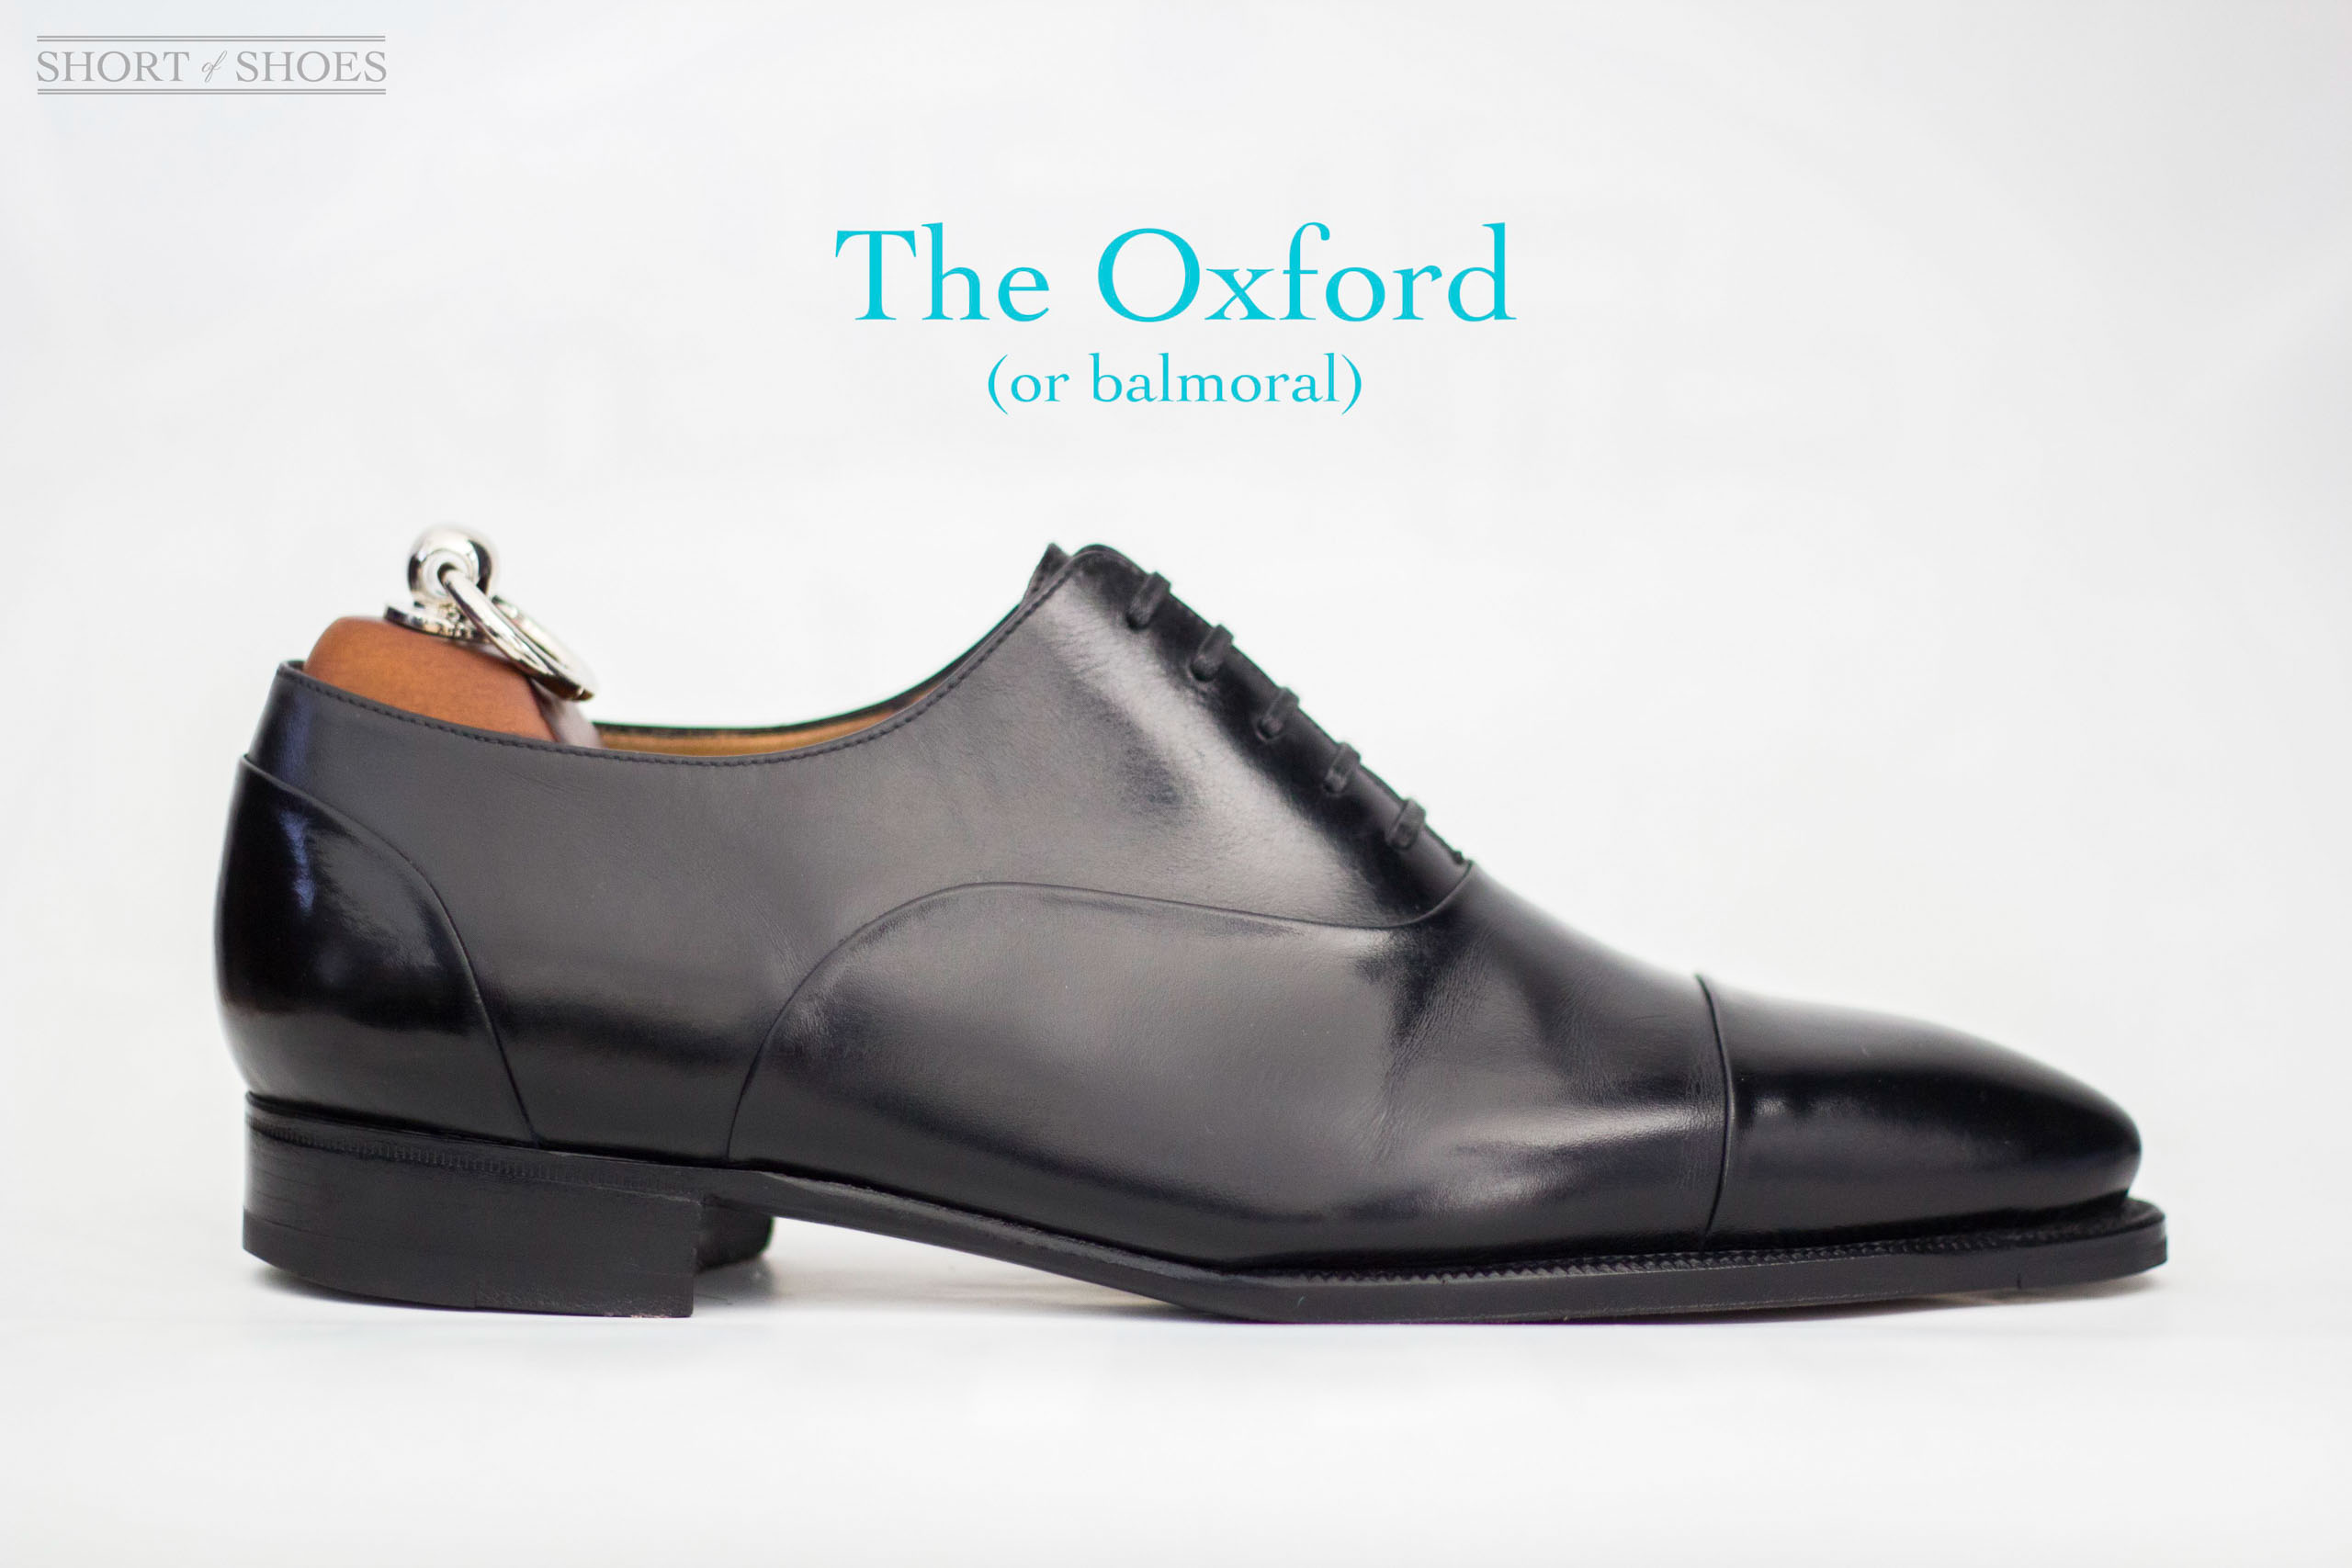 What Is An Oxford Dress Shoe And Why Not All Dress Shoes Are Oxfords